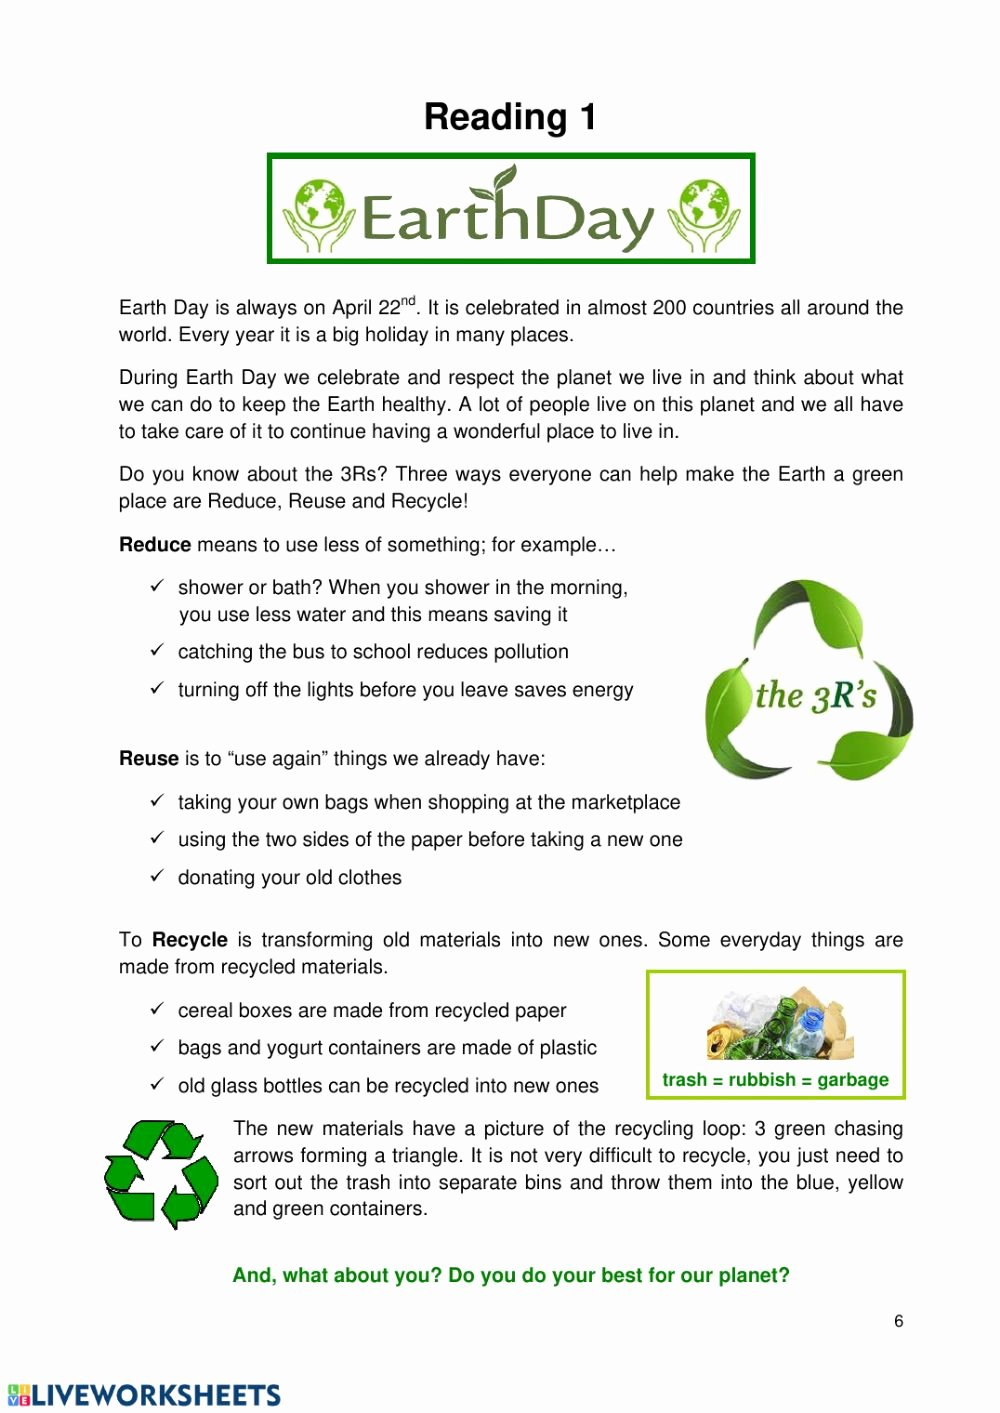 Earth Day Reading Comprehension Worksheets Fresh Earth Day Reading Interactive Worksheet